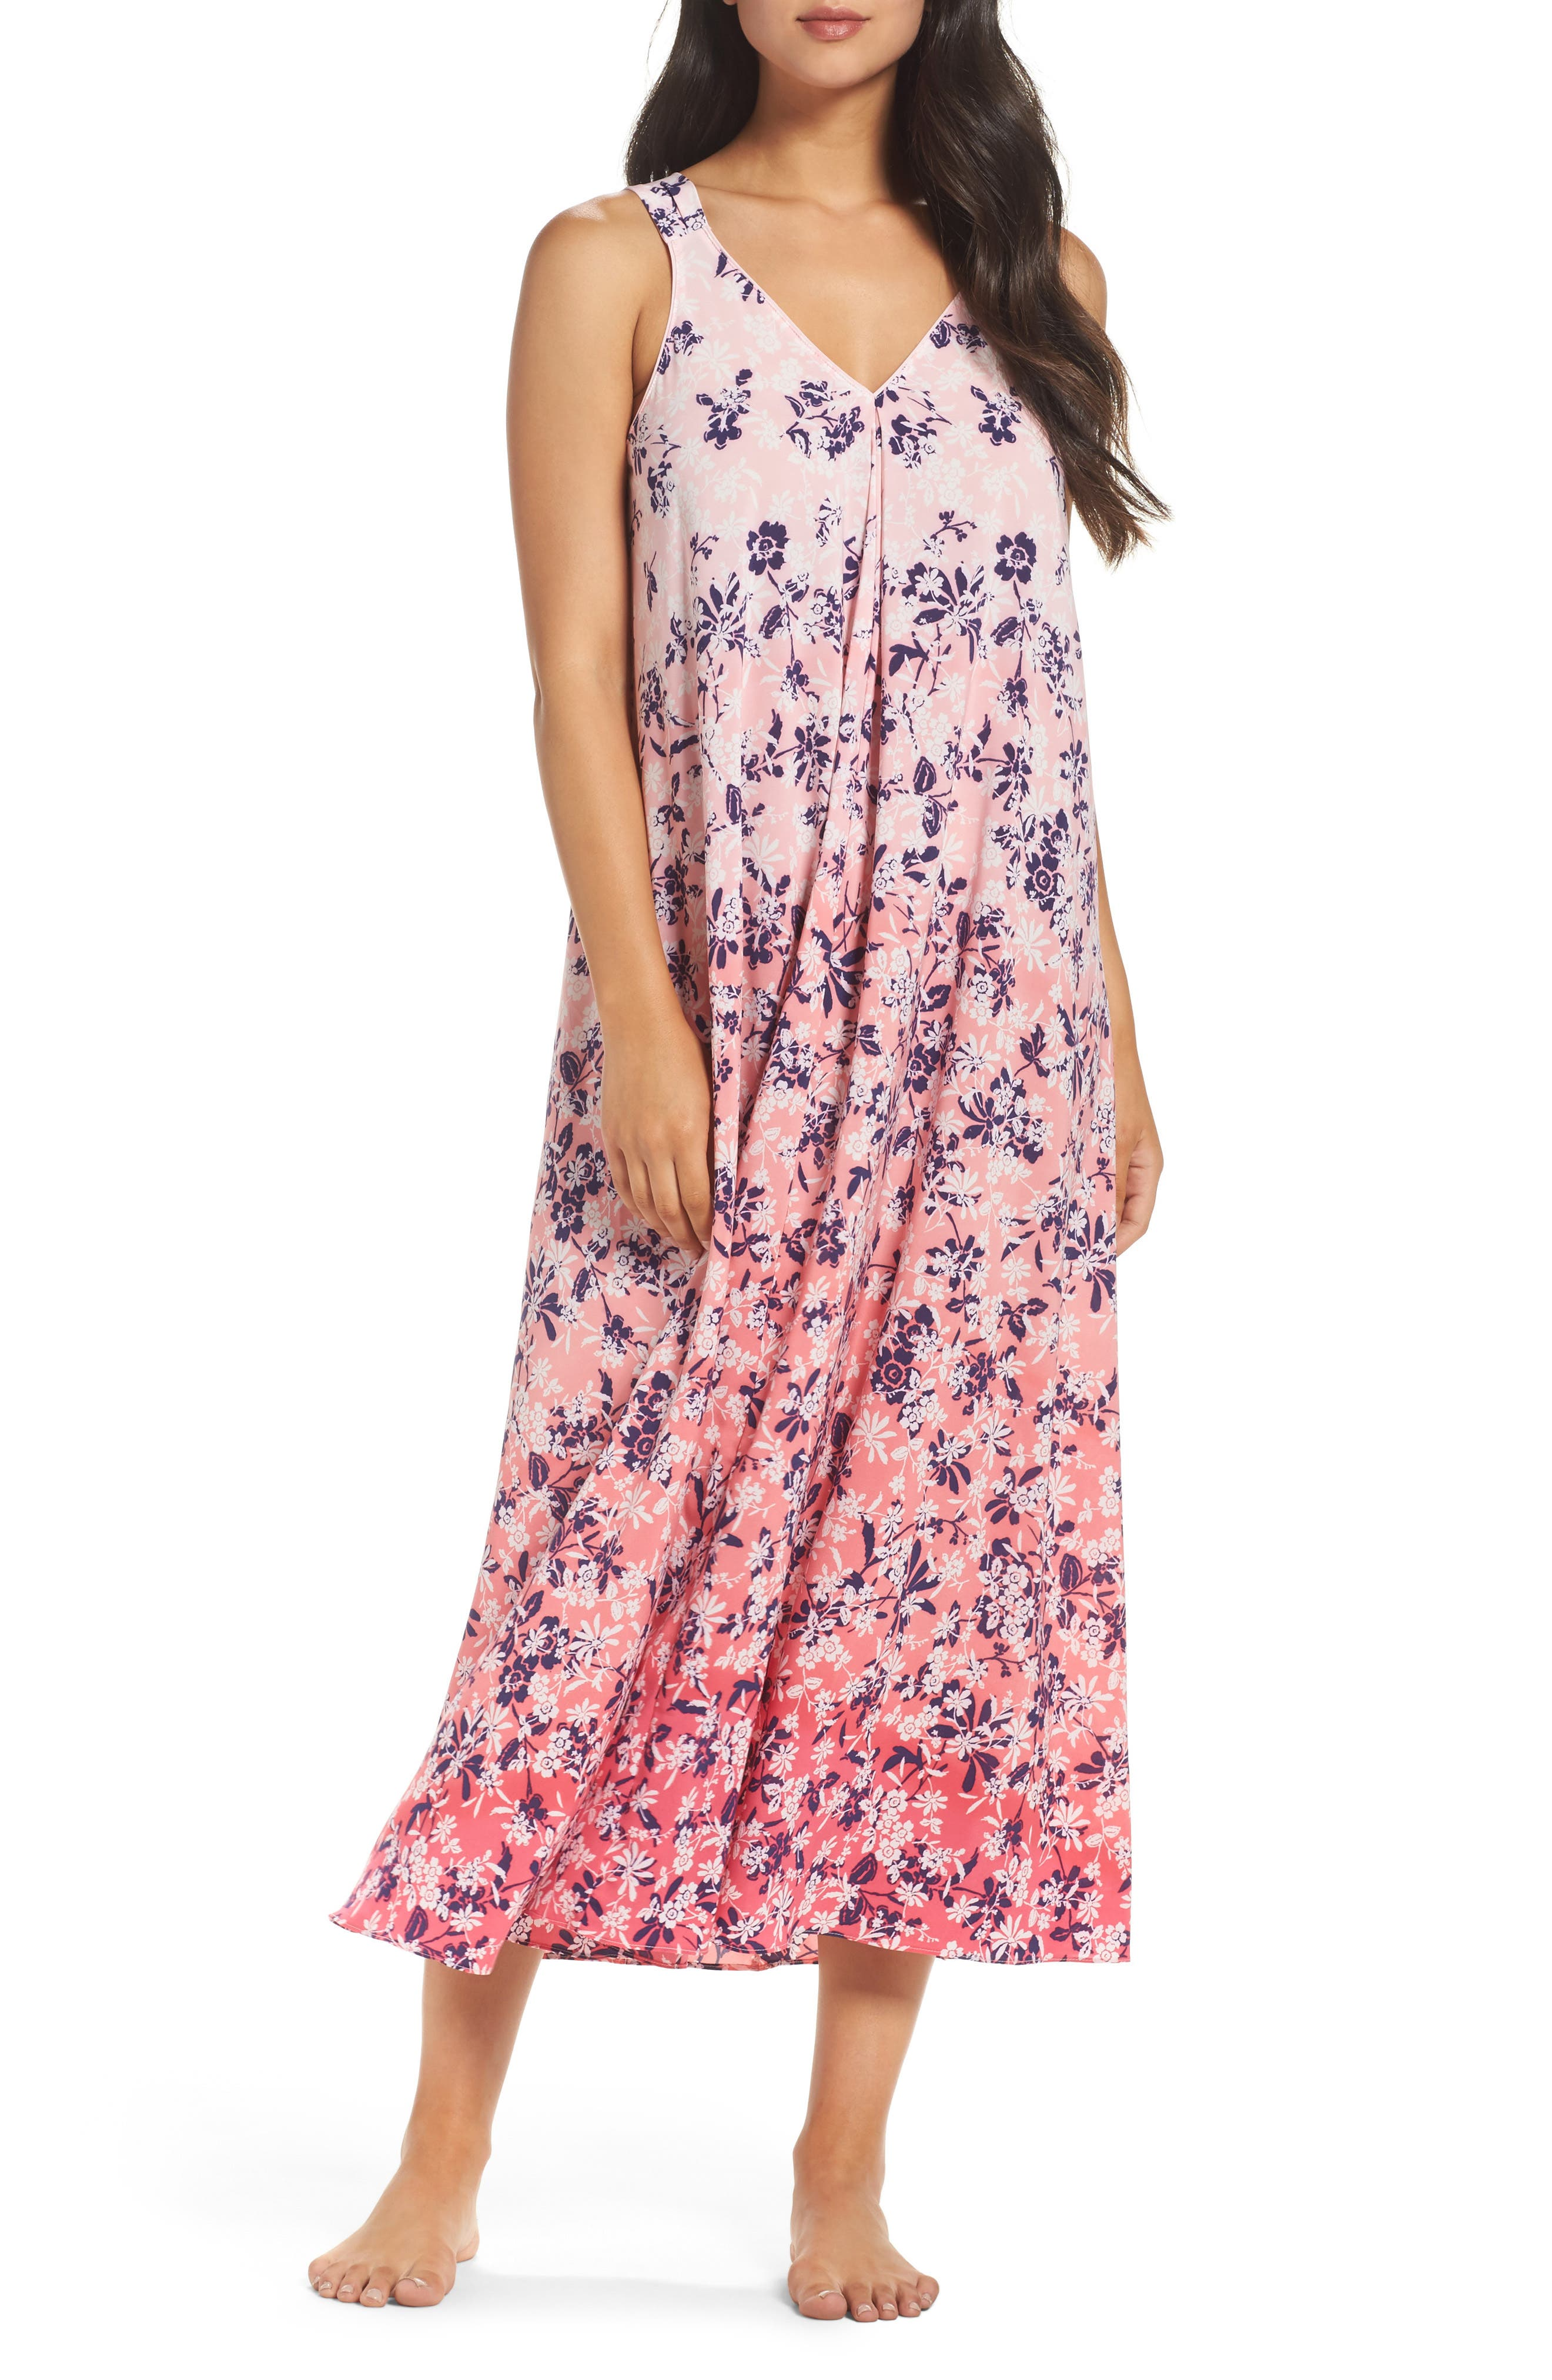 Oscar de la Renta Sleepwear Nightgown